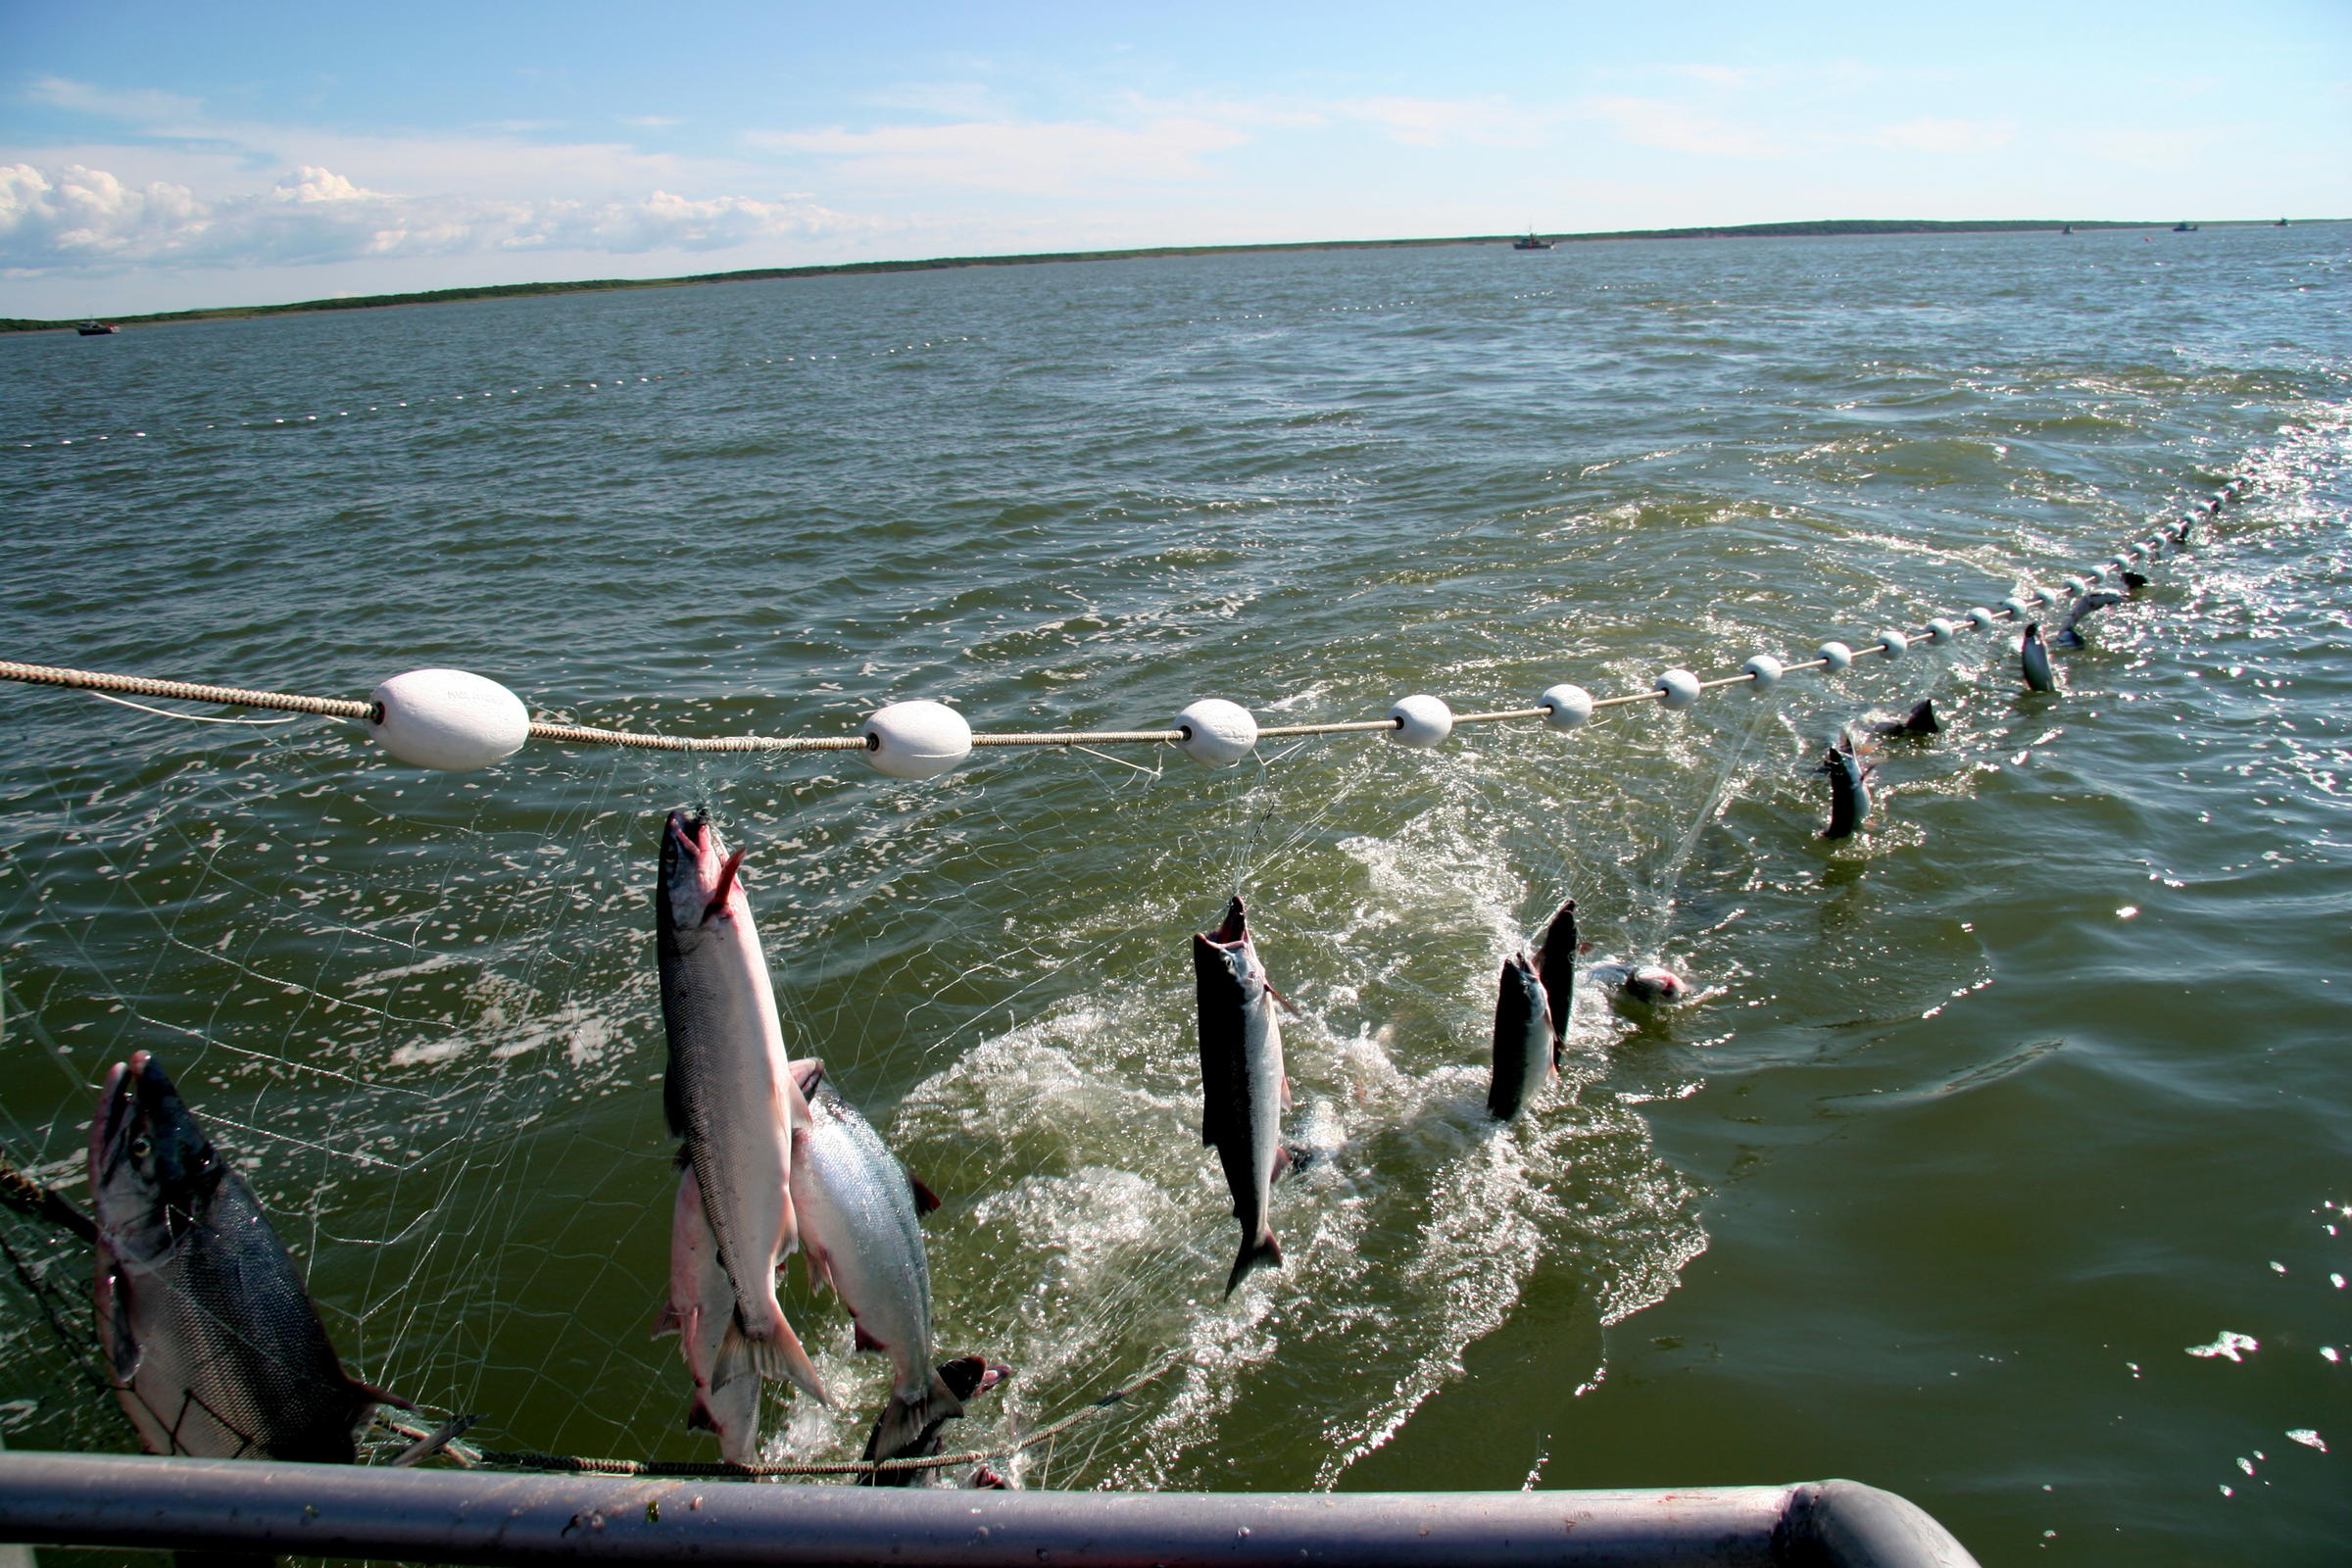 bristol bay fisheries report for june 14 2014 kdlg